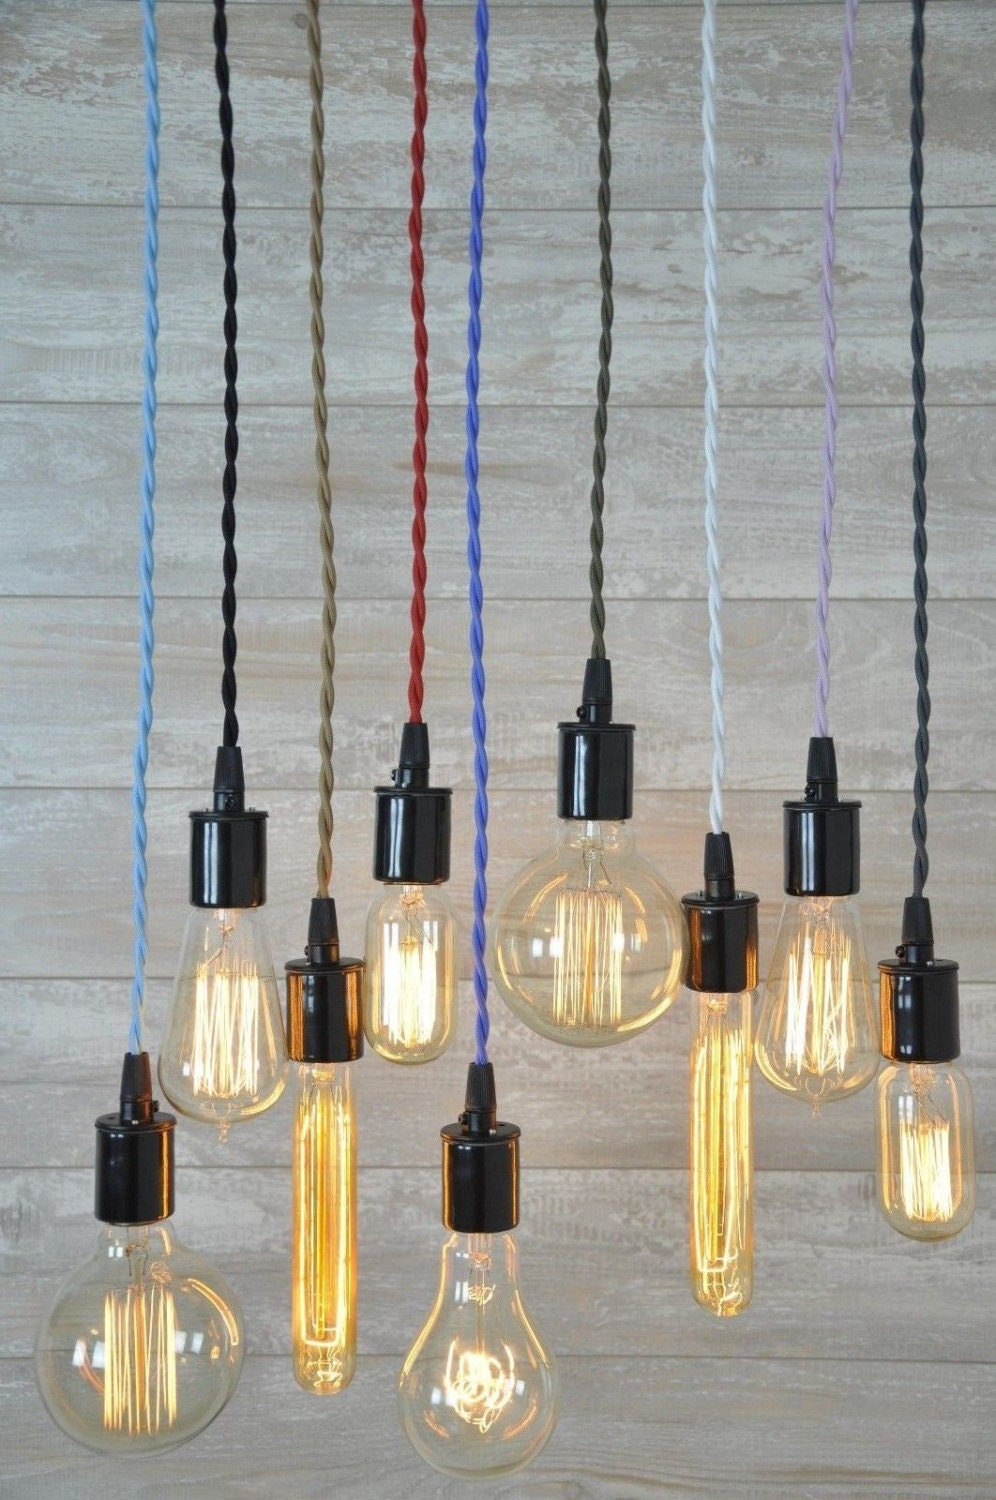 Cord Set With Bulb Socket 8 Foot Many Colors Ceiling Pendant Light Lamp Wiring Plug Ends